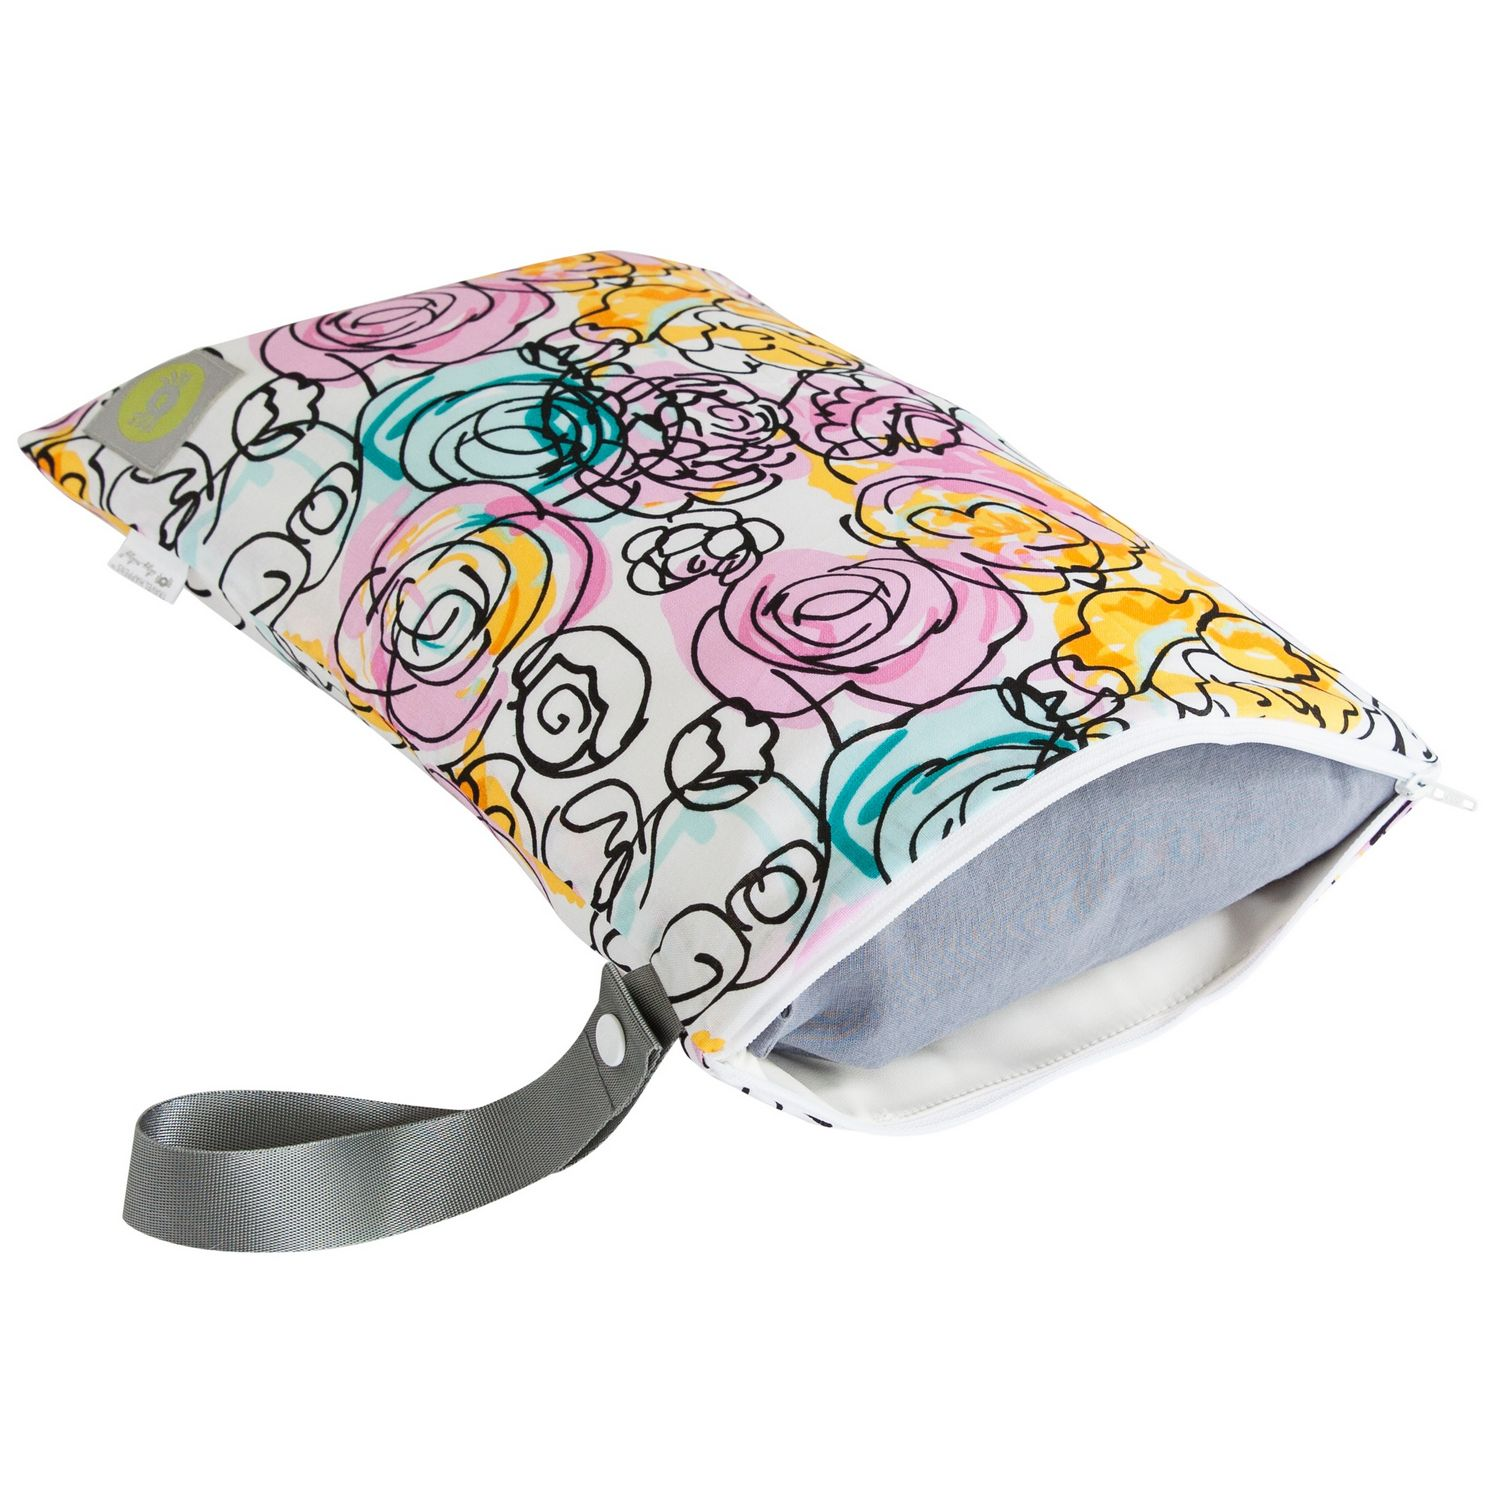 Itzy Ritzy Travel Happens Sealed Wet Bag - Watercolor Bloom